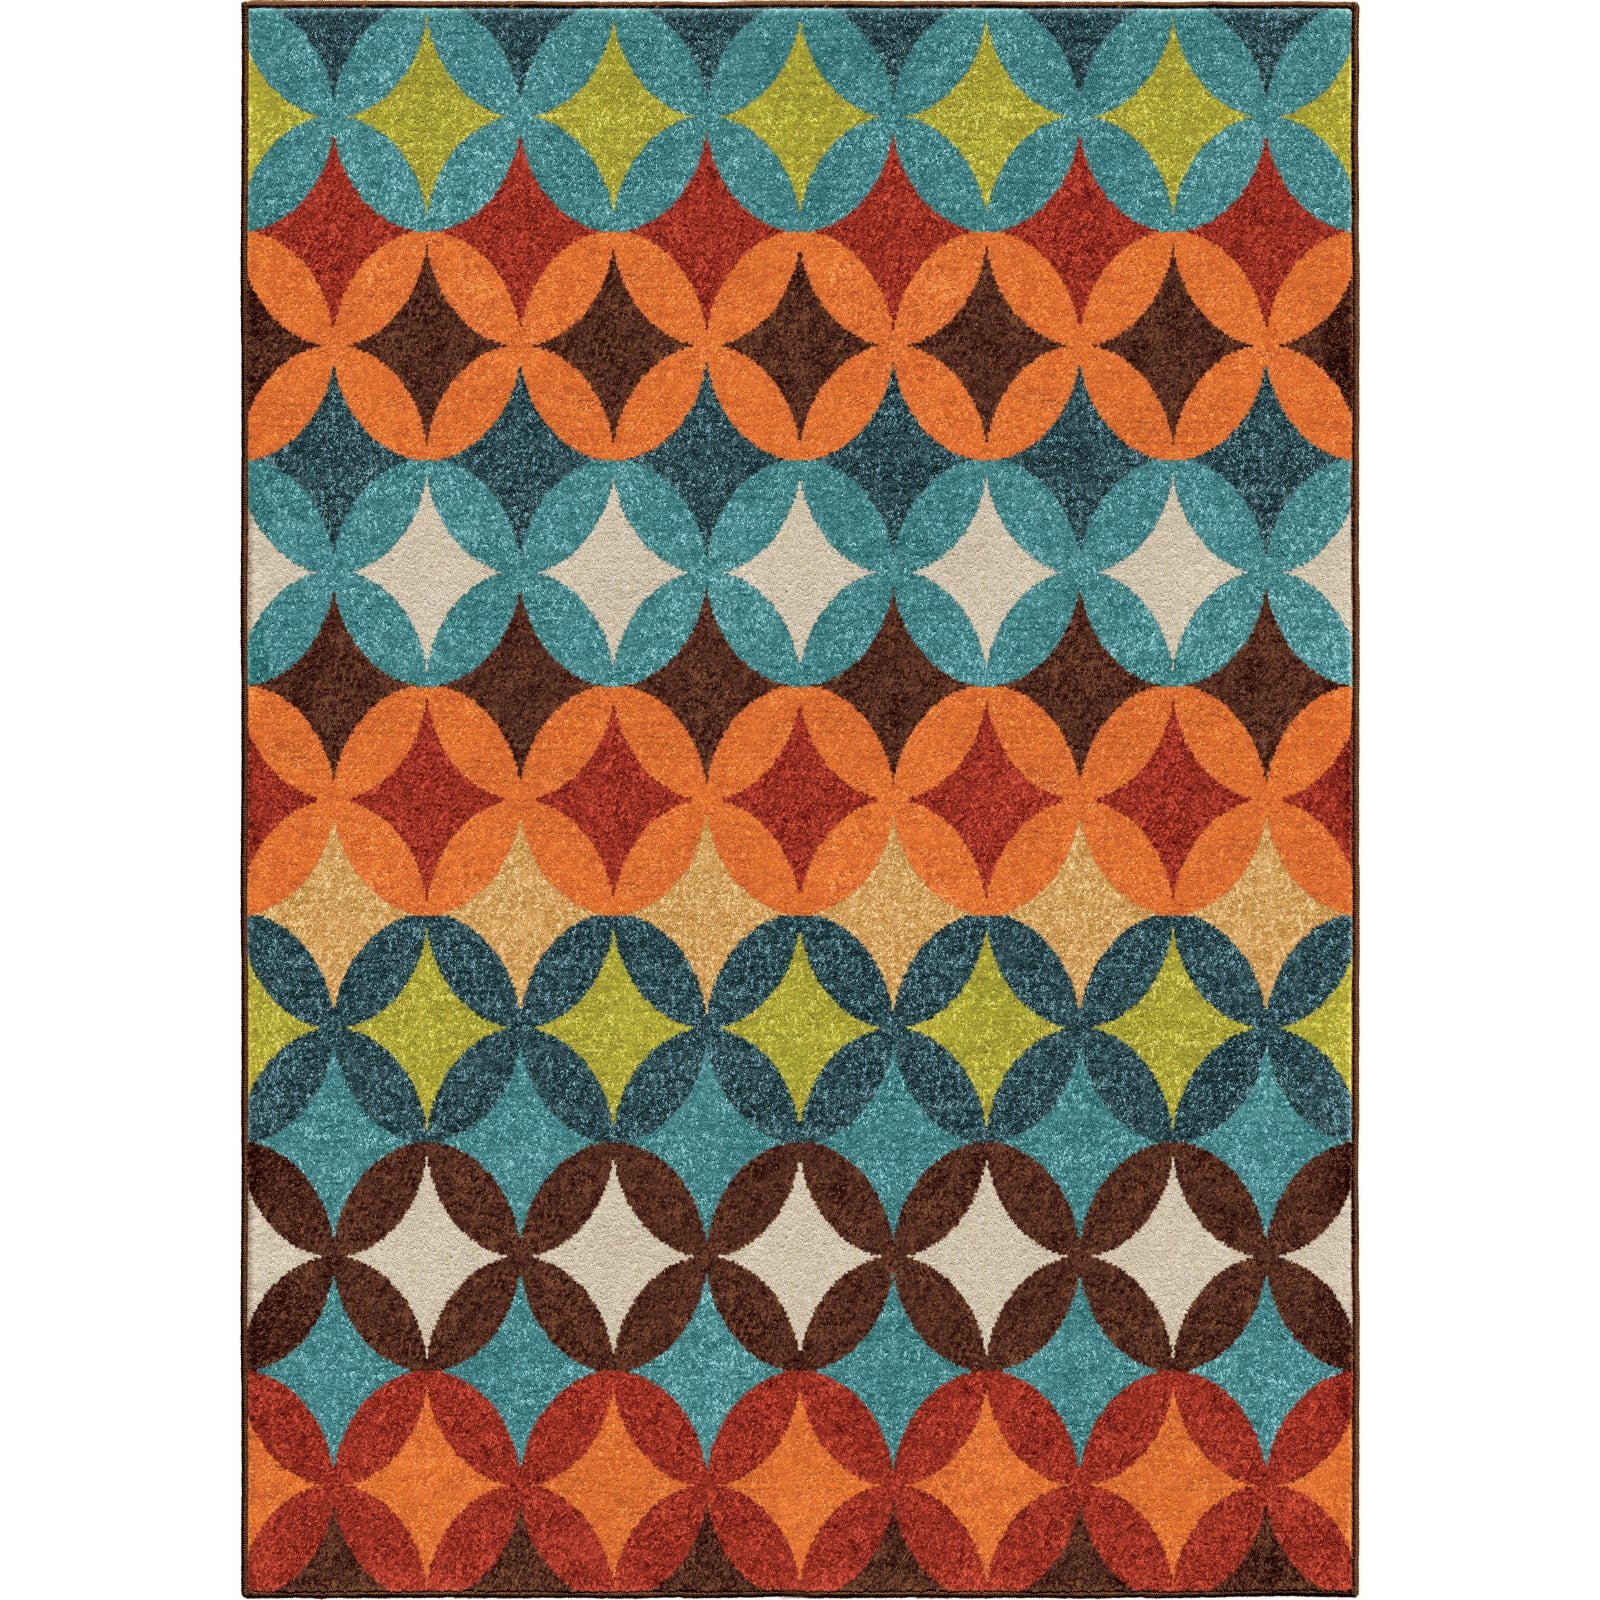 Orian Rugs Promise Strawberry Fields Multi Area Rug main image